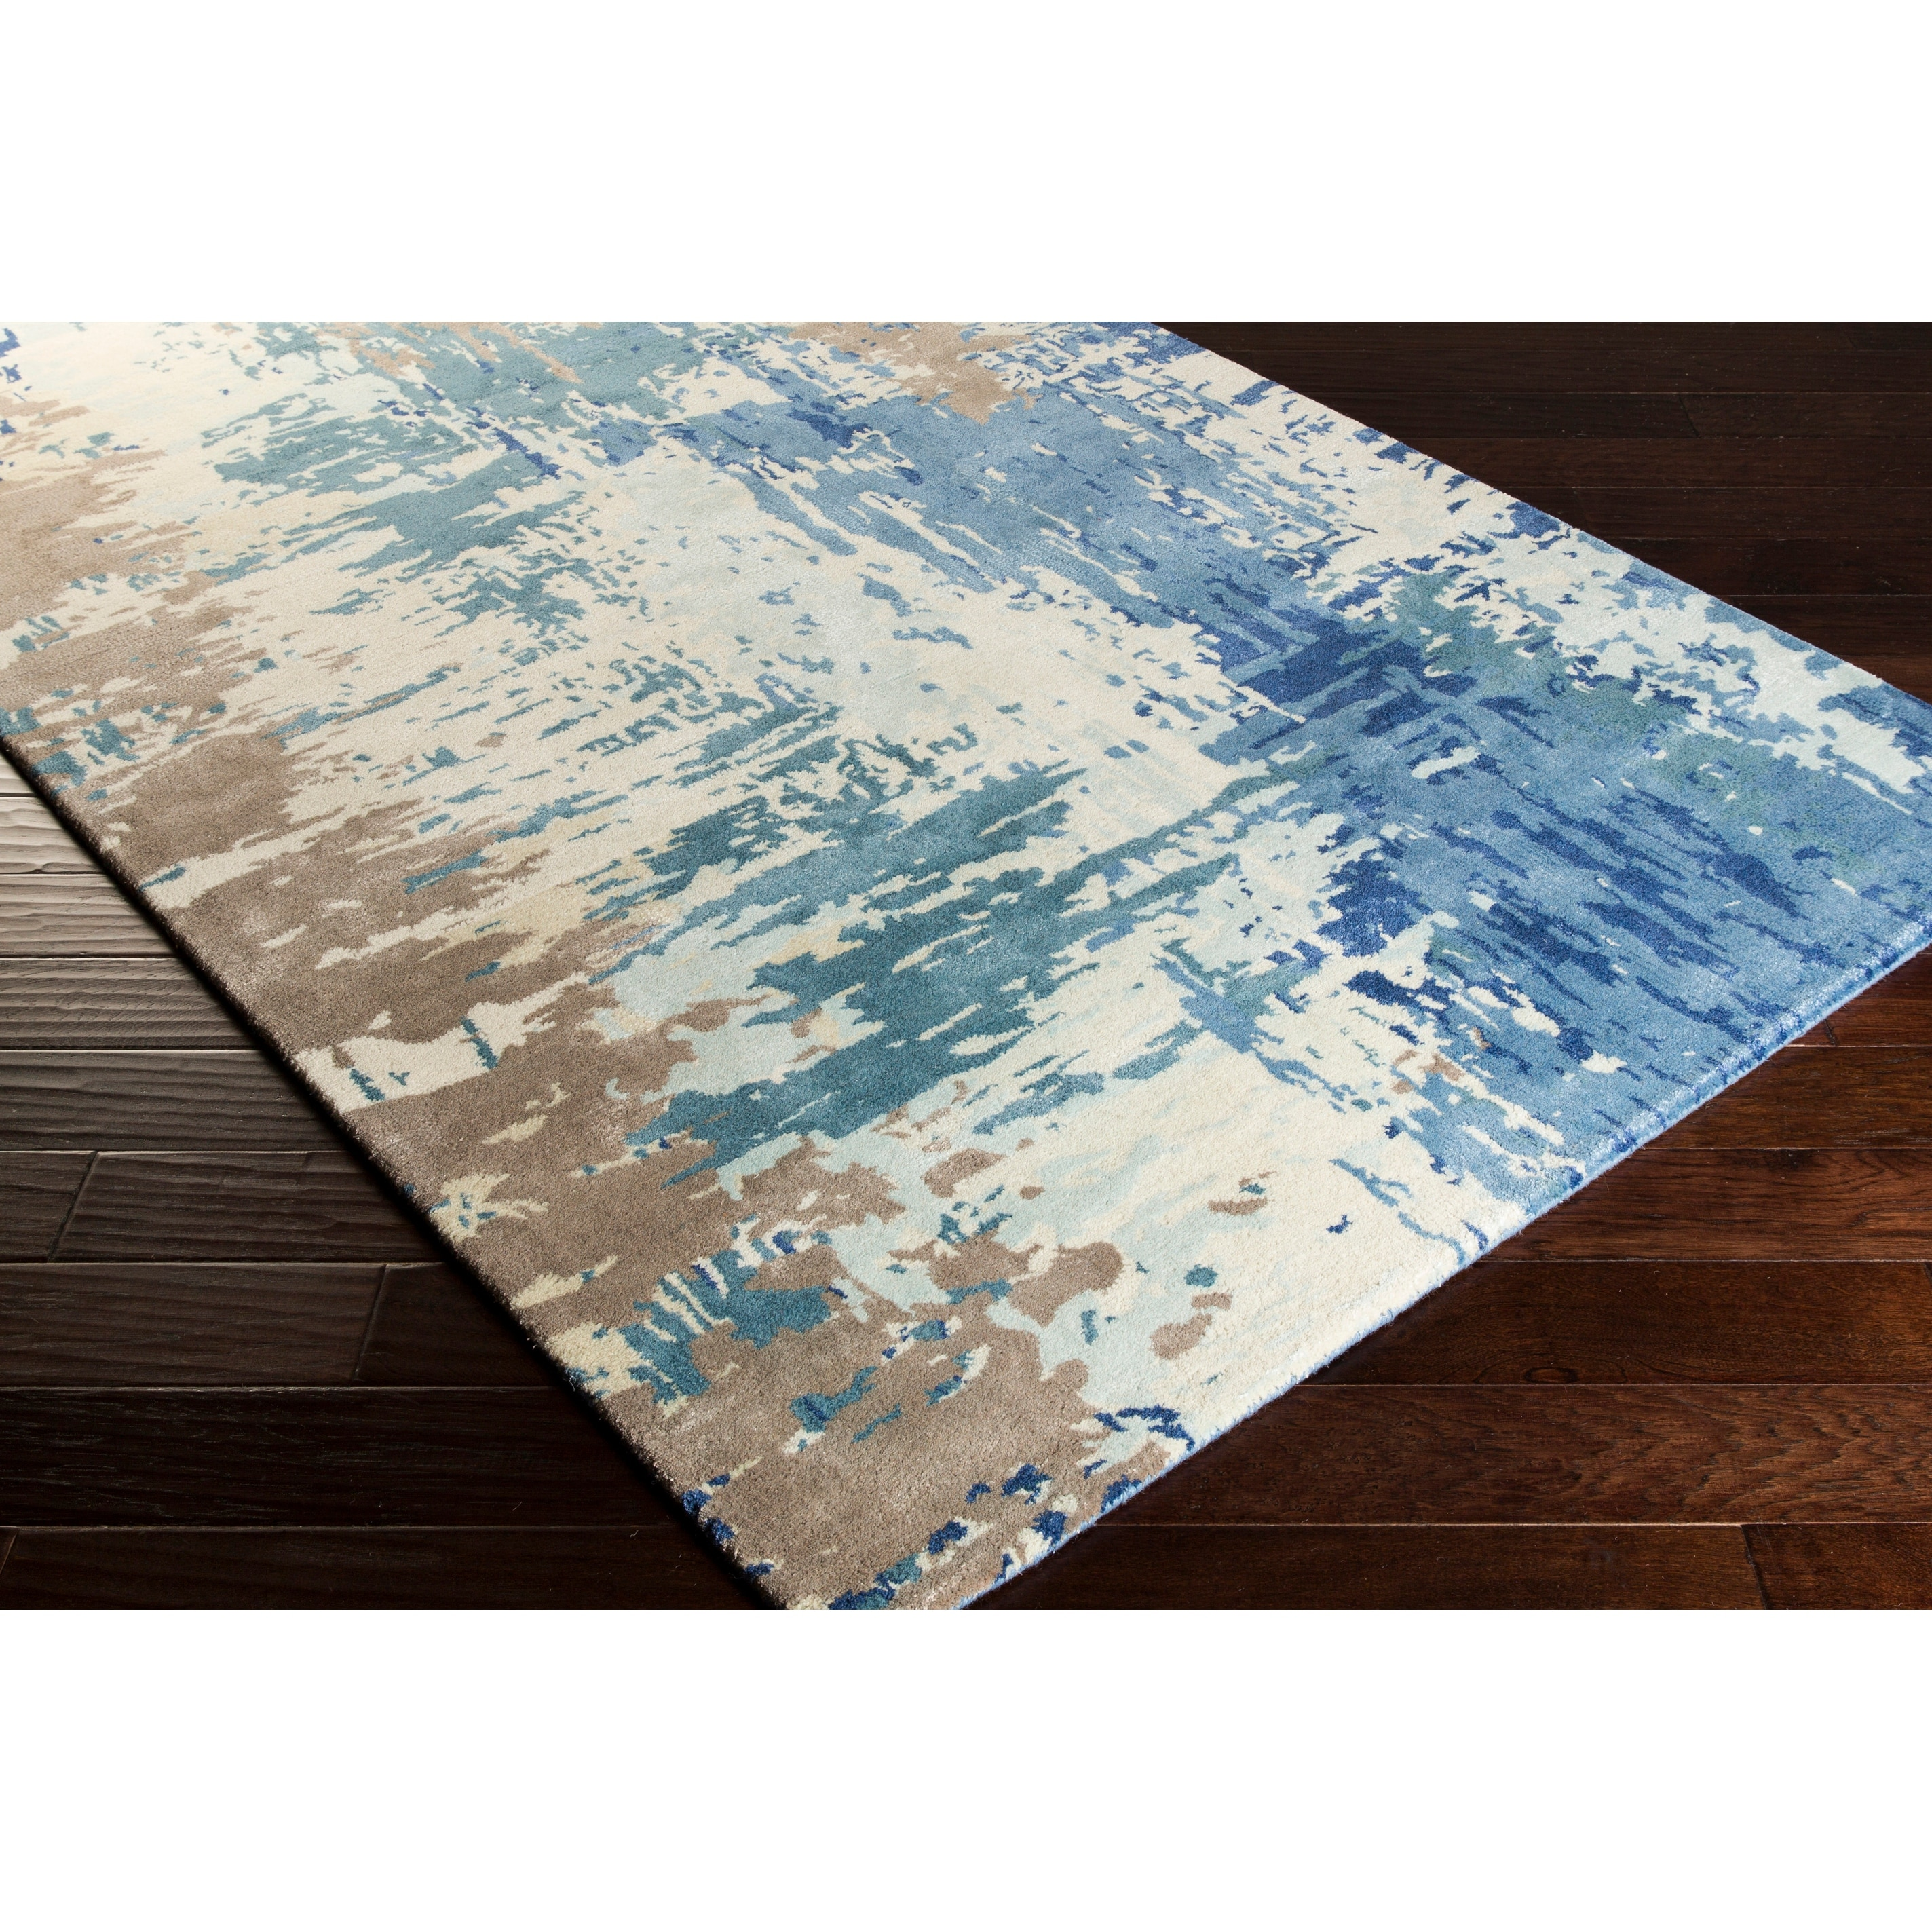 Lucas Handmade Abstract Wool Blend Area Rug Overstock 9289969